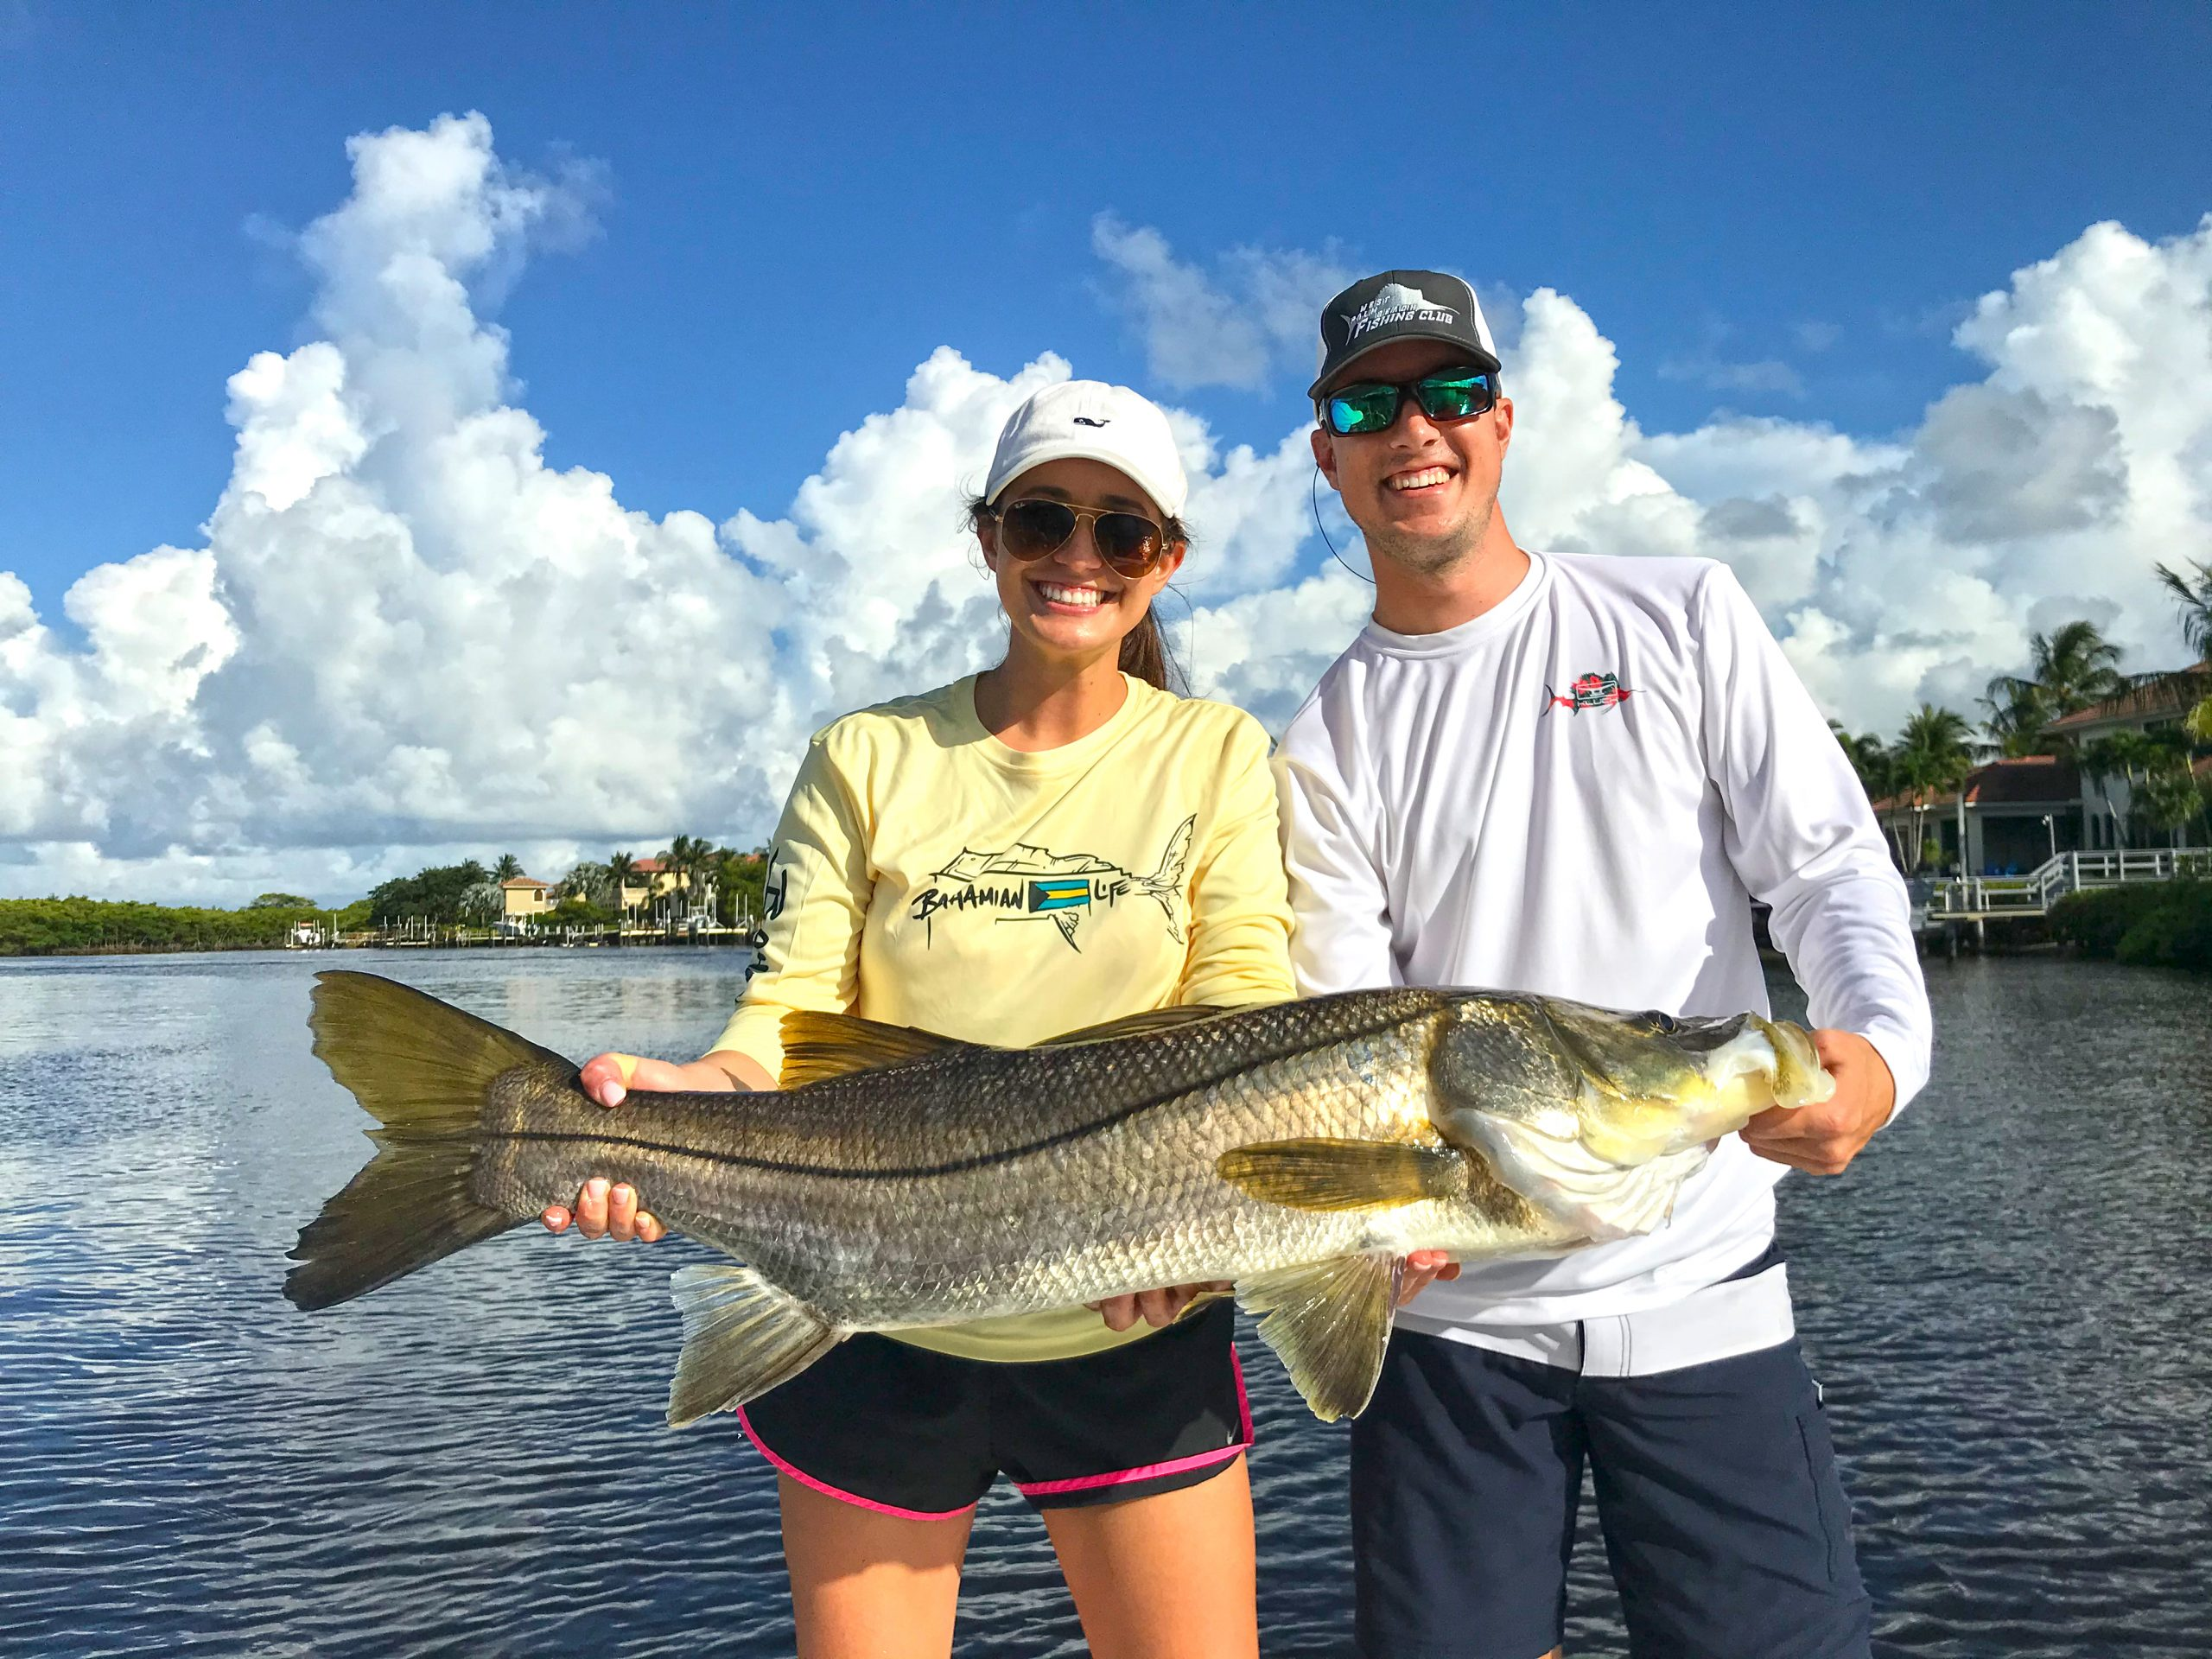 Kelsey Hagan 22 lb snook on 12 gen with an artifical lure in the Lox River on 7-19-20